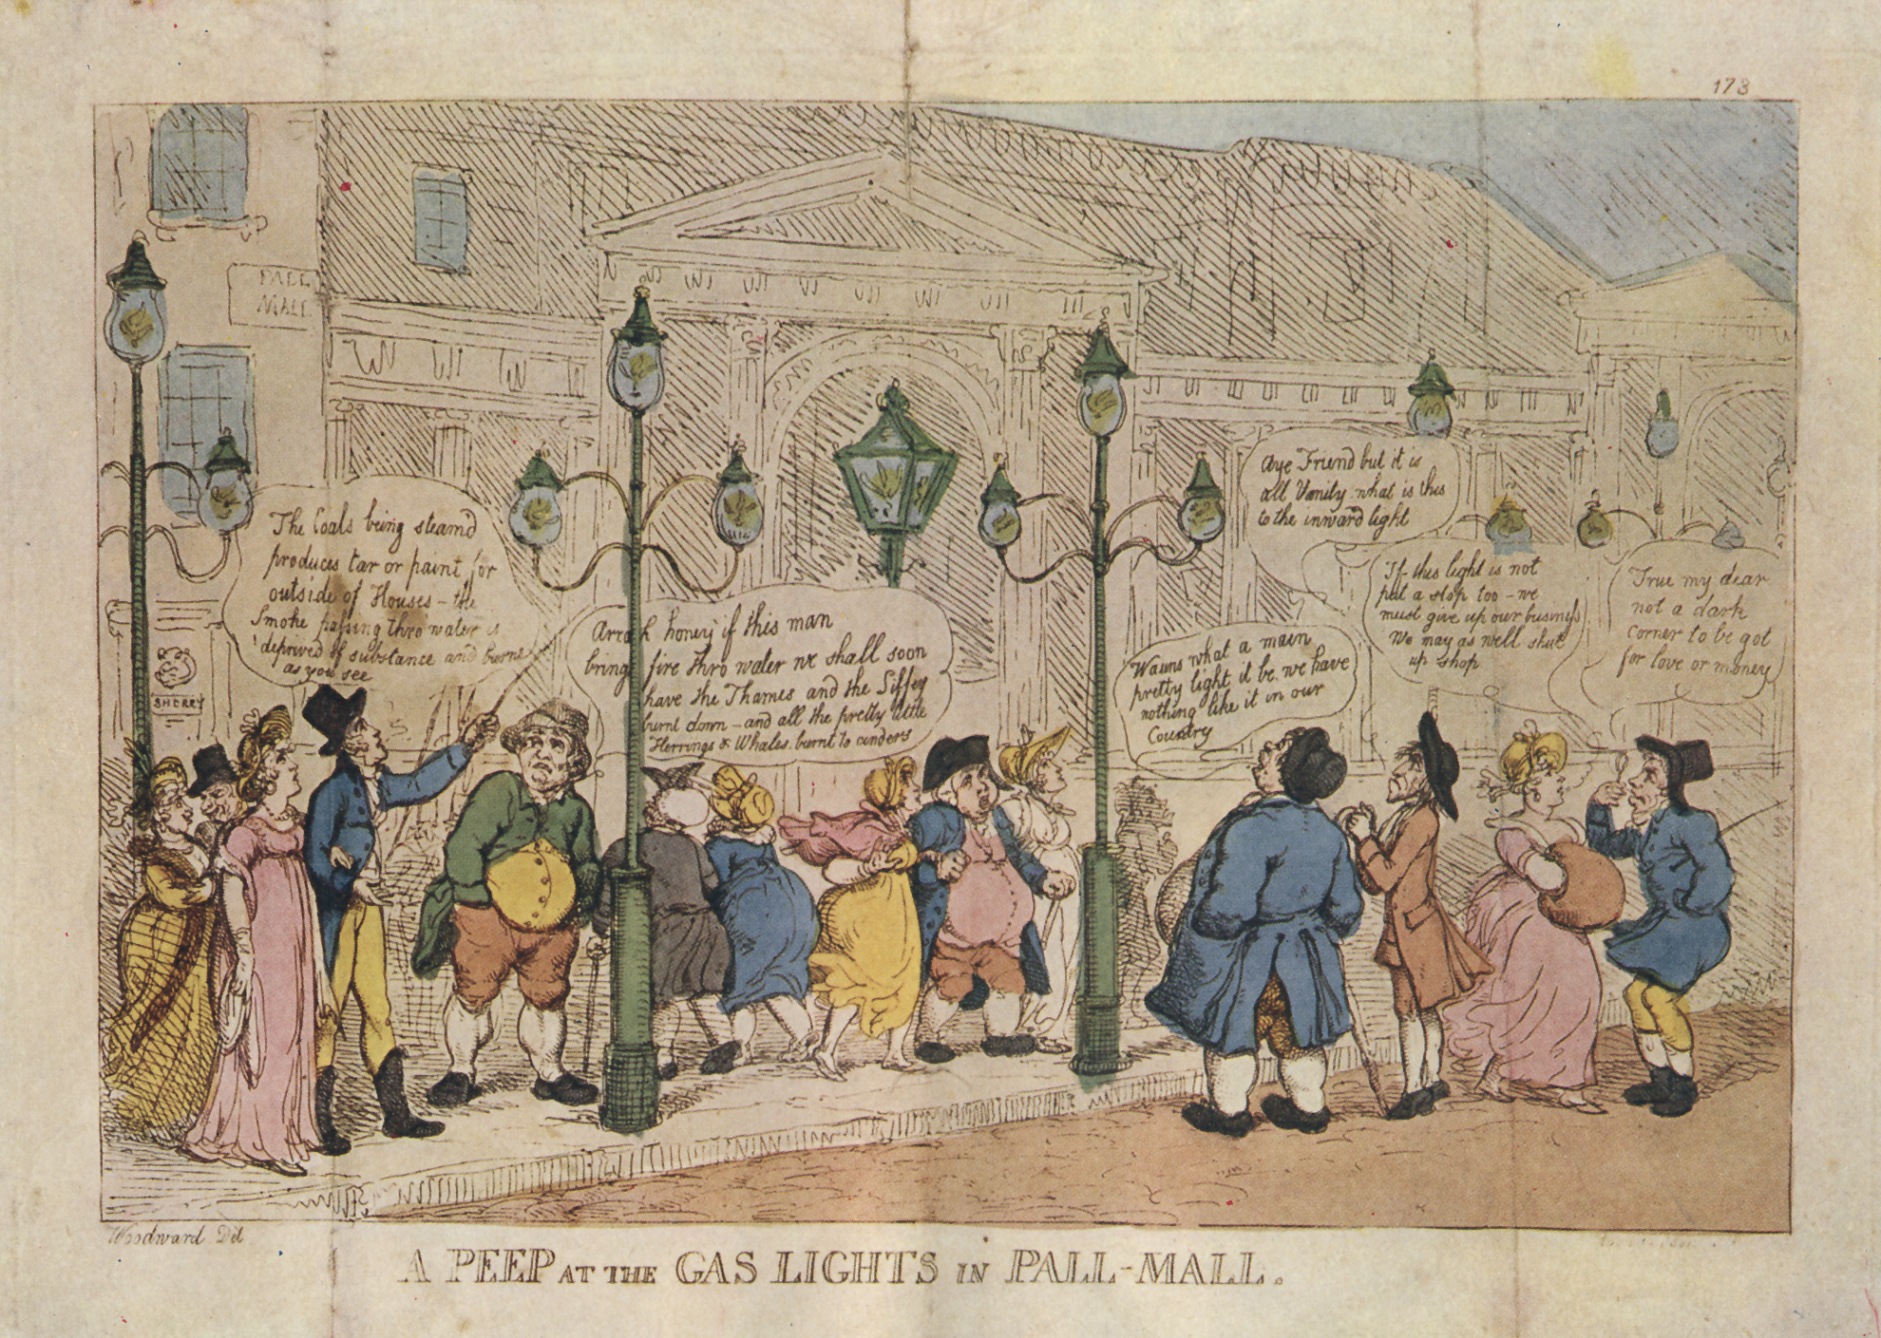 "Fig. 2: George M. Woodward, ""A Peep at the Gas Lights in Pall Mall"", 1808. Retrieved February 10, 2019, from https://commons.wikimedia.org/wiki/File:A_Peep_at_the_Gas_Lights_in_Pall_Mall.png, Public Domain US expired."